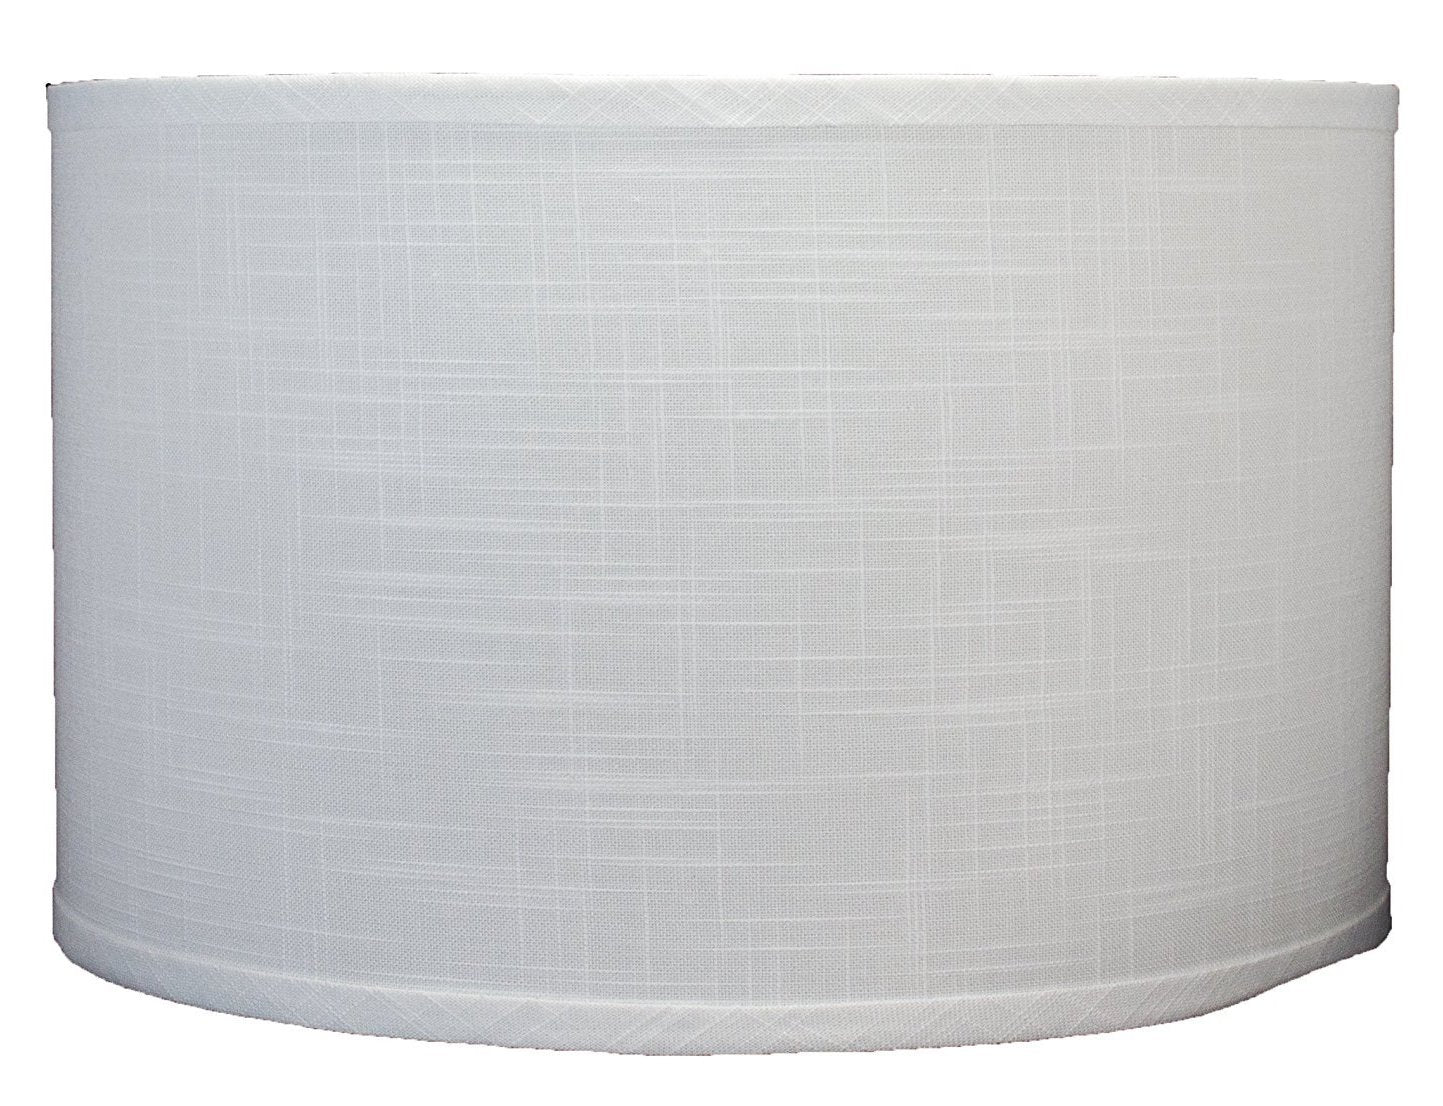 Linen Drum Lamp Shade, 16-inch By 16-inch By 10-inch, Spider